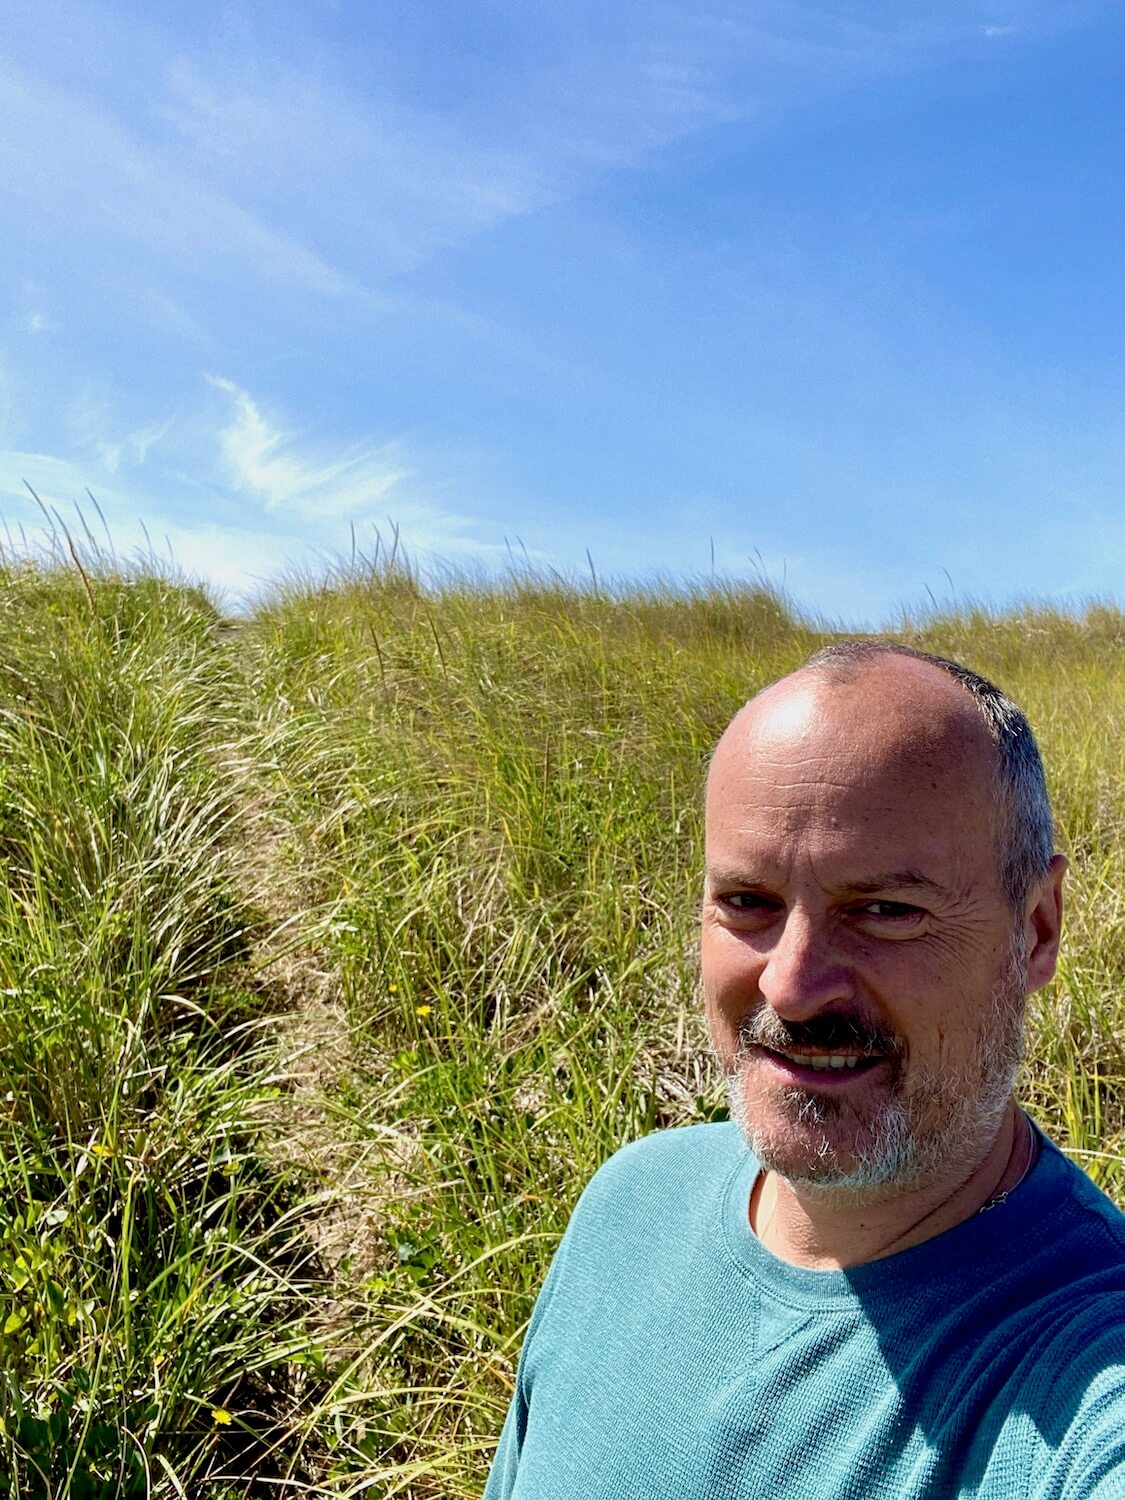 Matthew Kessi stands in a sand dune along the beach on the Washington Coast. He is smiling while the green grass pops up with sharp edges. The sky is blue in the background.